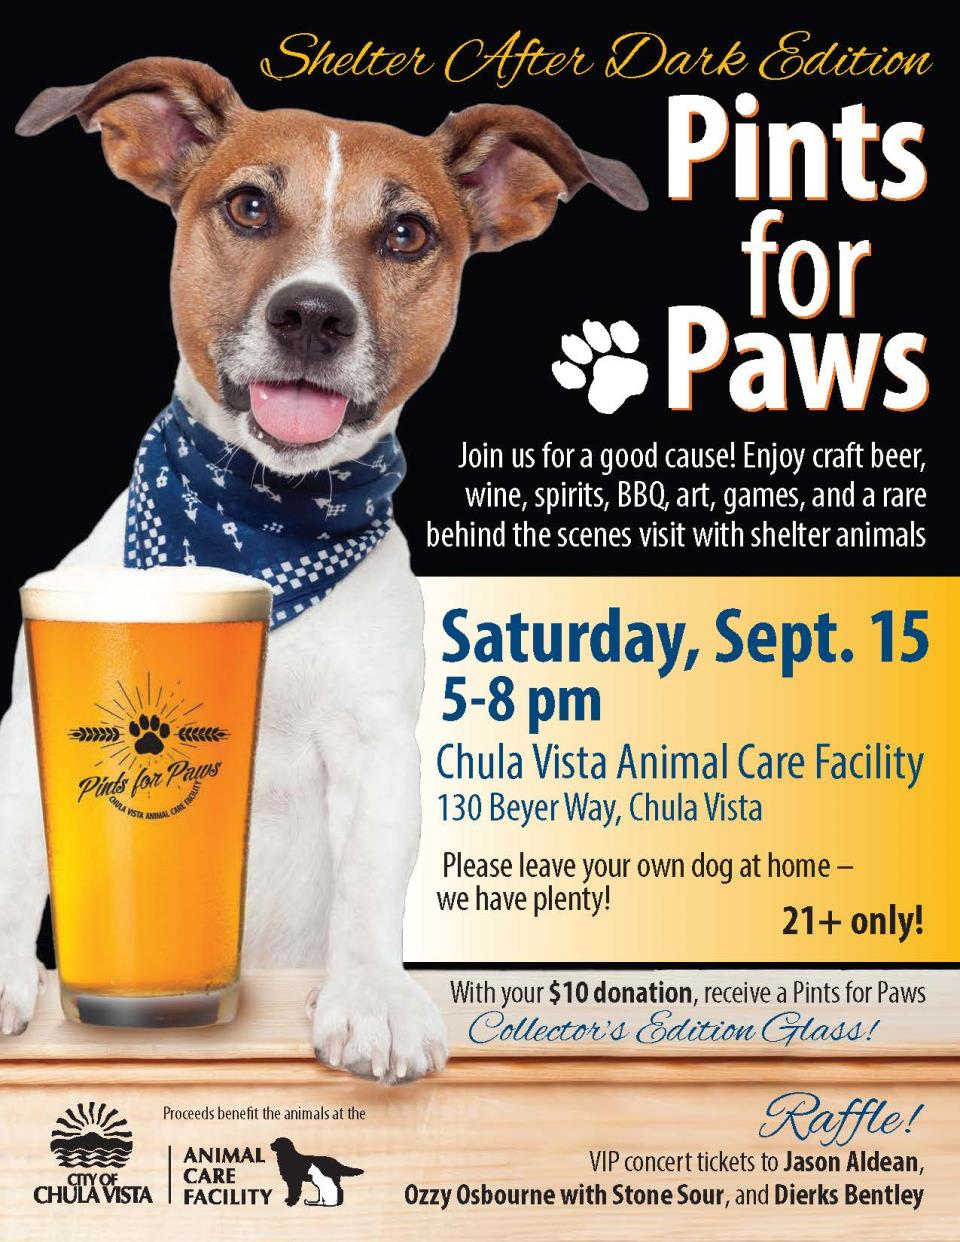 PintsForPaws shelter edition